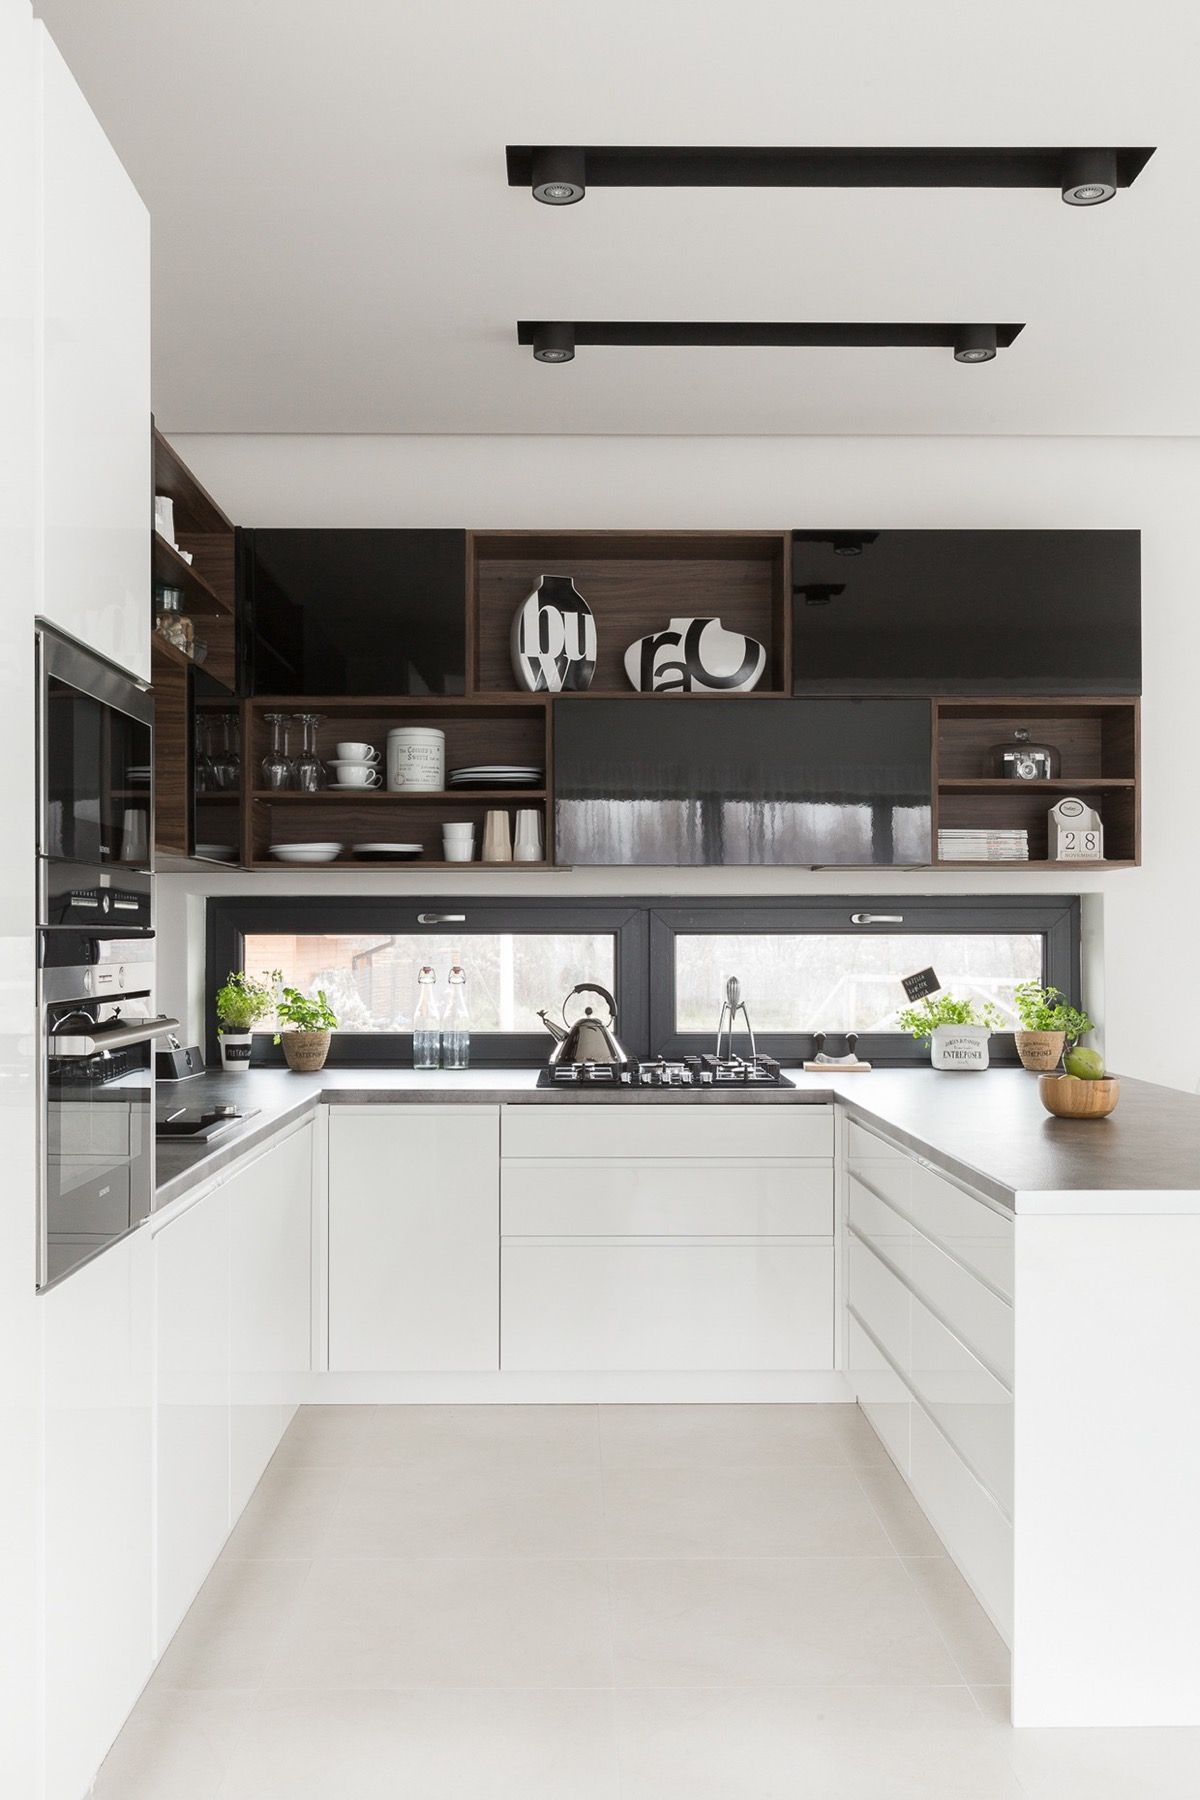 Best 50 Unique U Shaped Kitchens And Tips You Can Use From Them 400 x 300